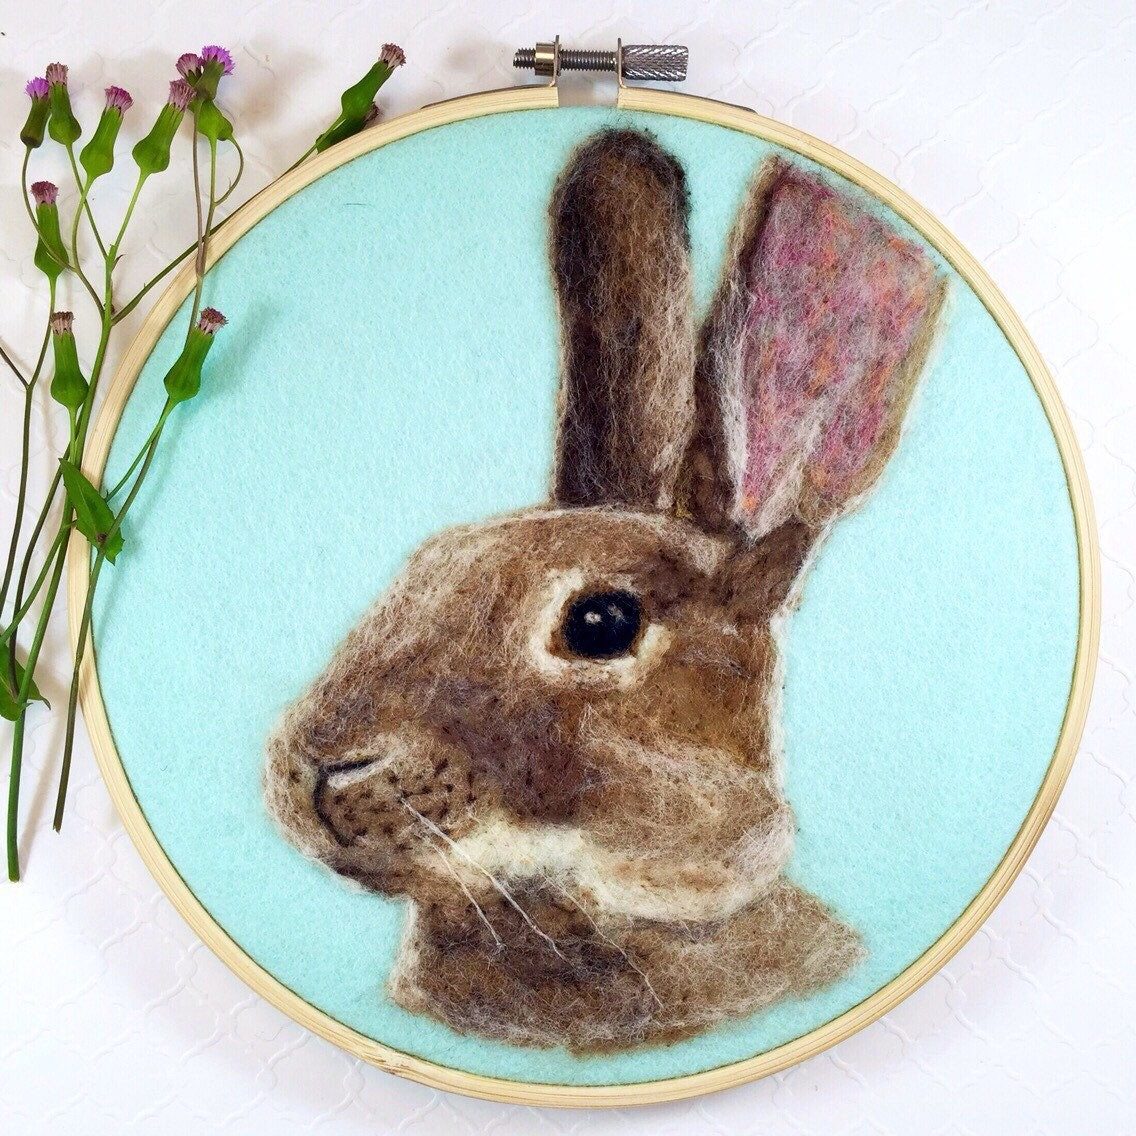 Bunny nursery decor easter decorations rabbit art needle for What kind of paint to use on kitchen cabinets for embroidery hoop wall art